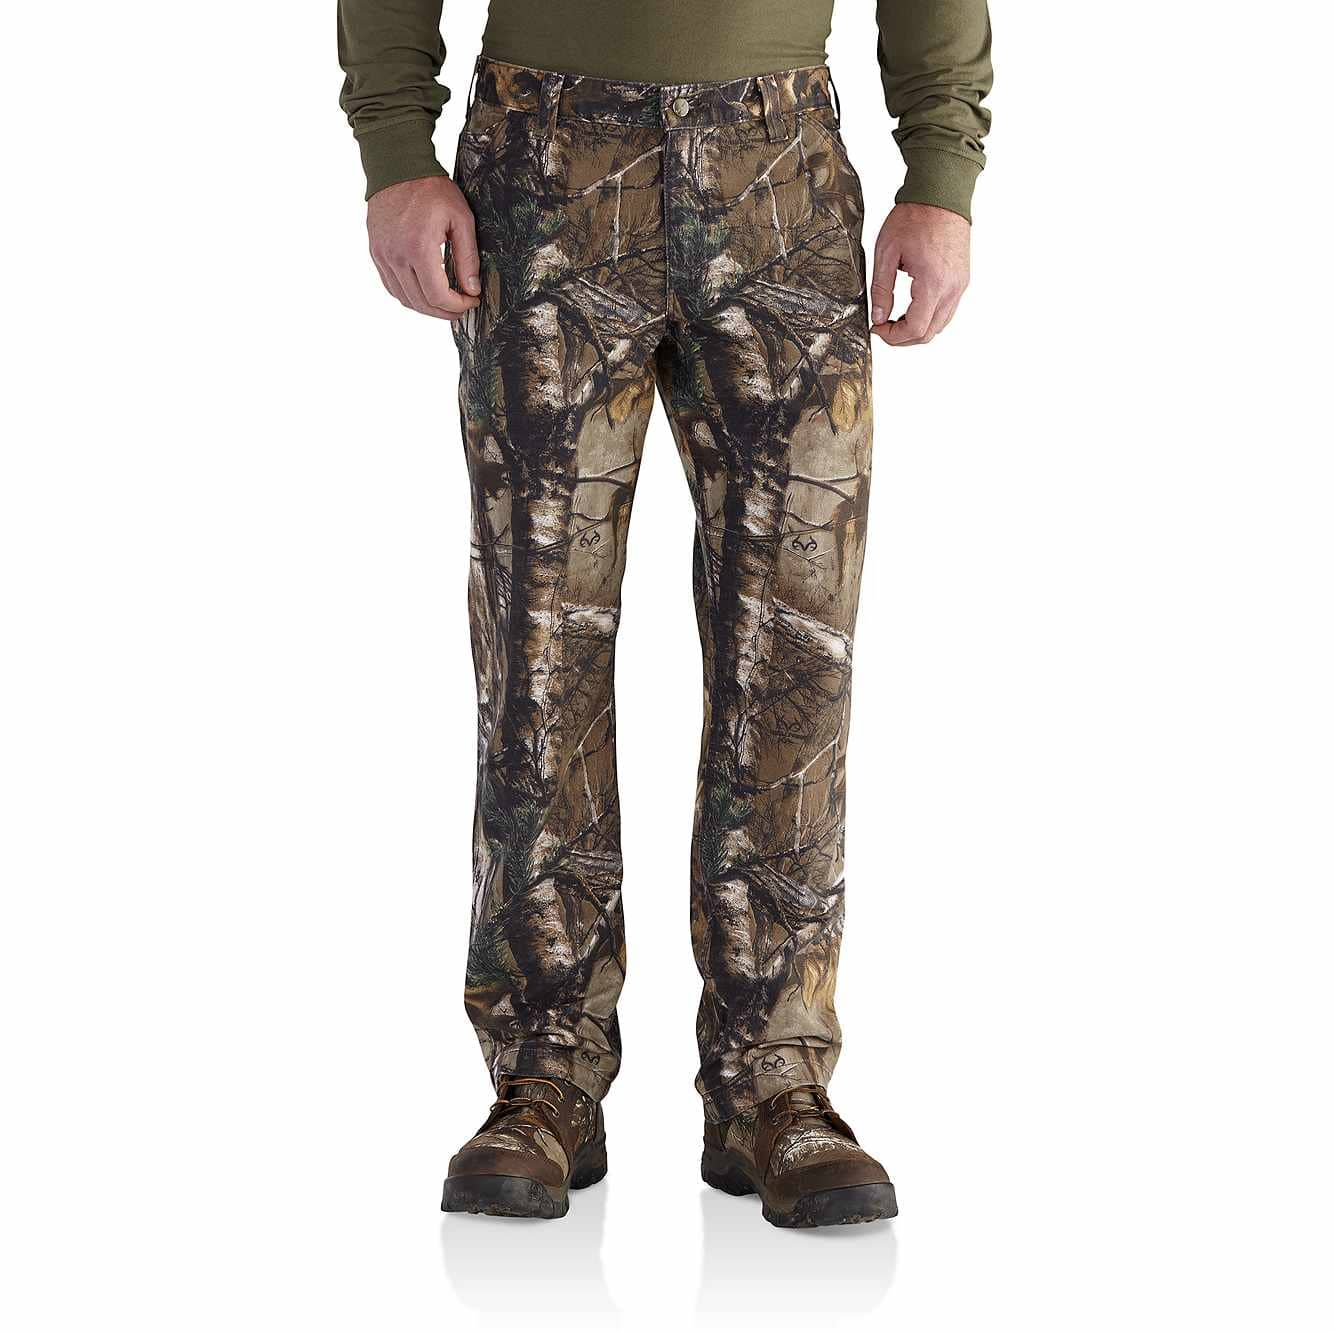 Picture of Rugged Flex® Rigby Camo Dungaree in Realtree Xtra